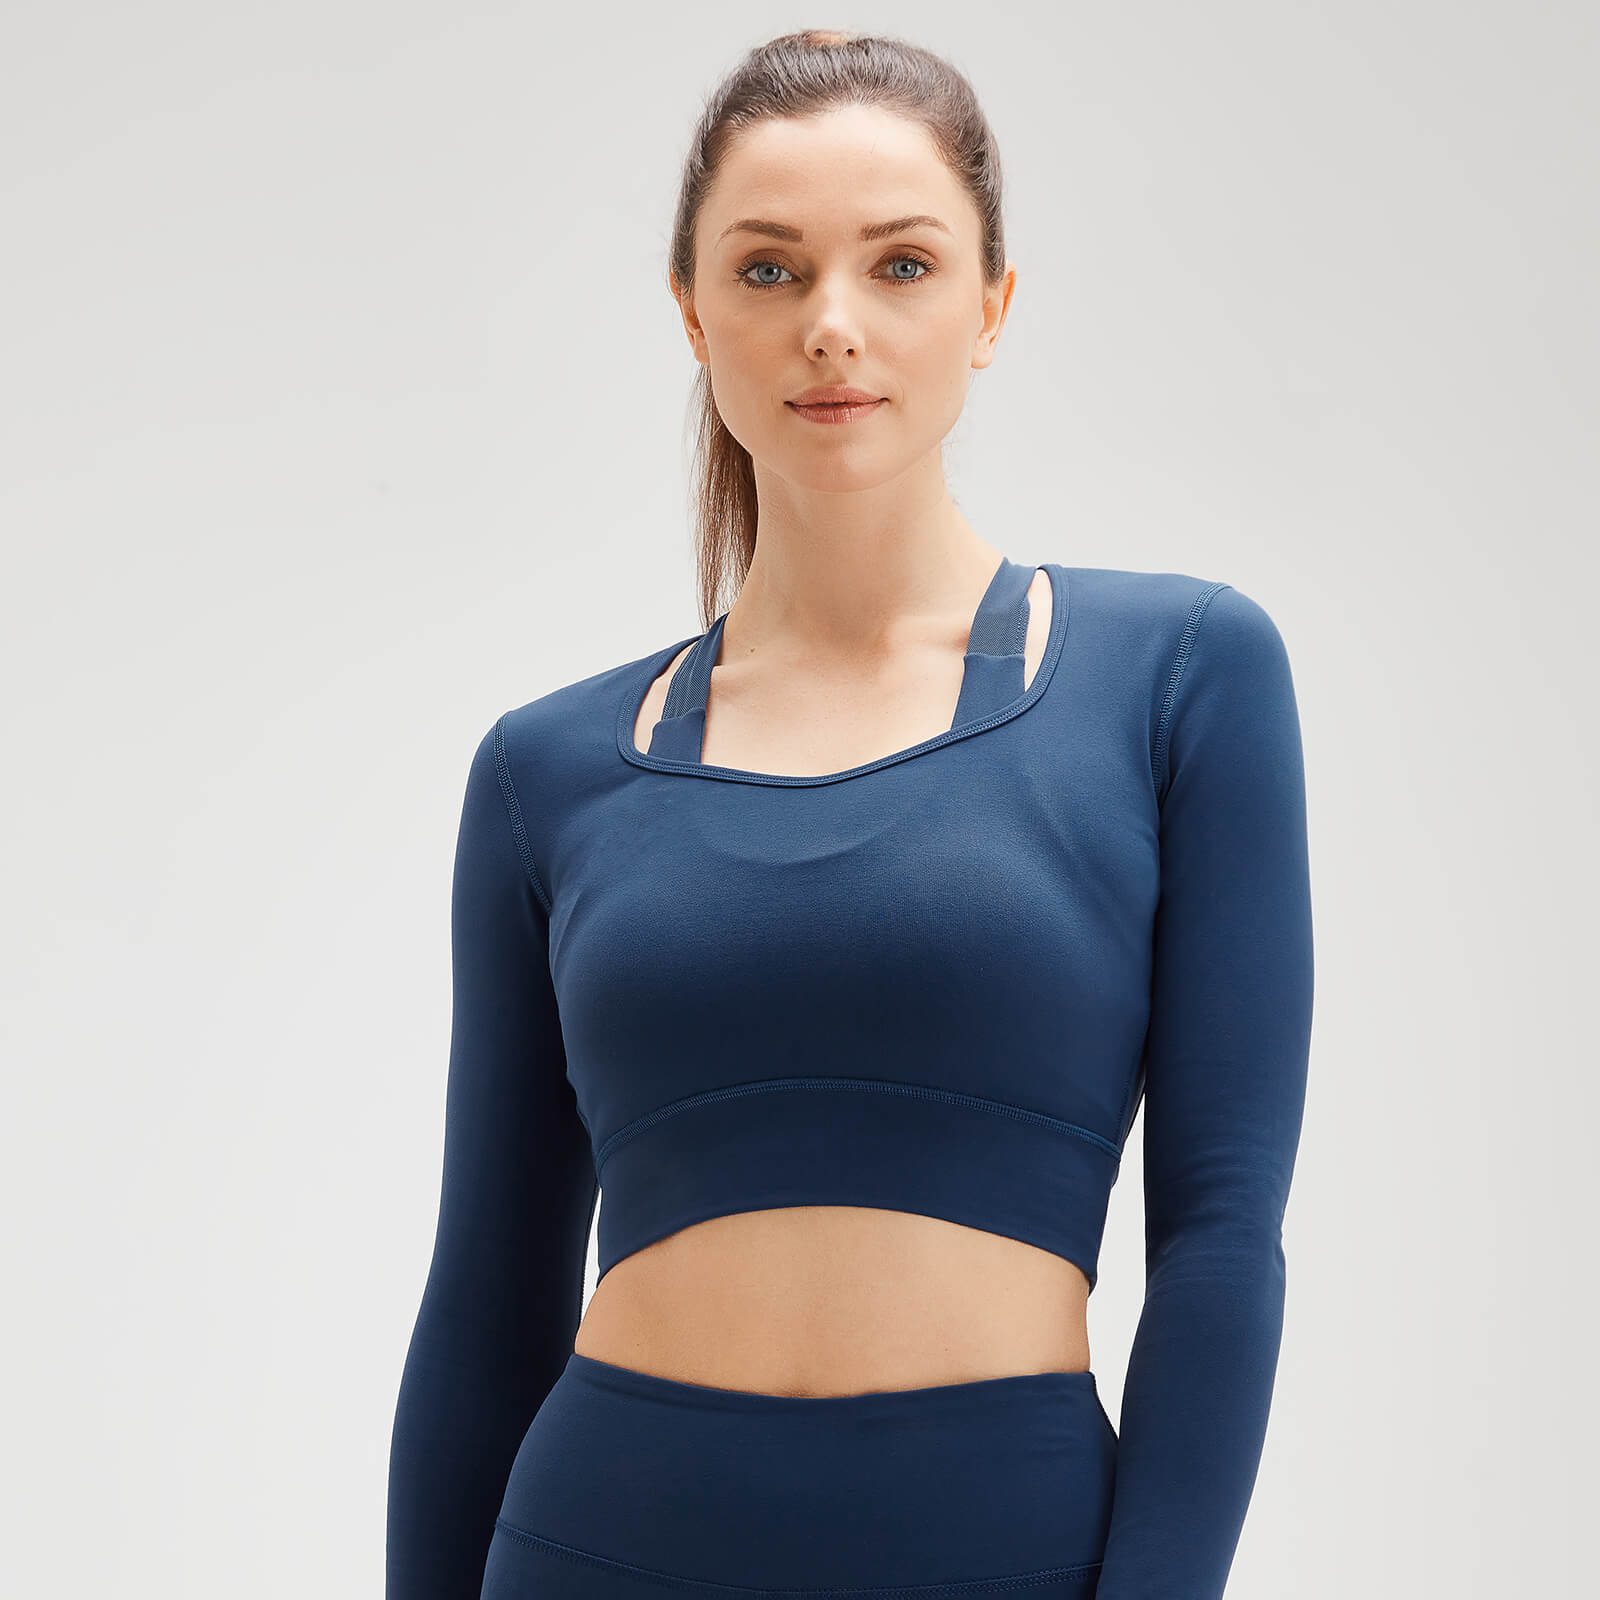 MP Women's Power Open Back Crop Top - Dark Blue - L